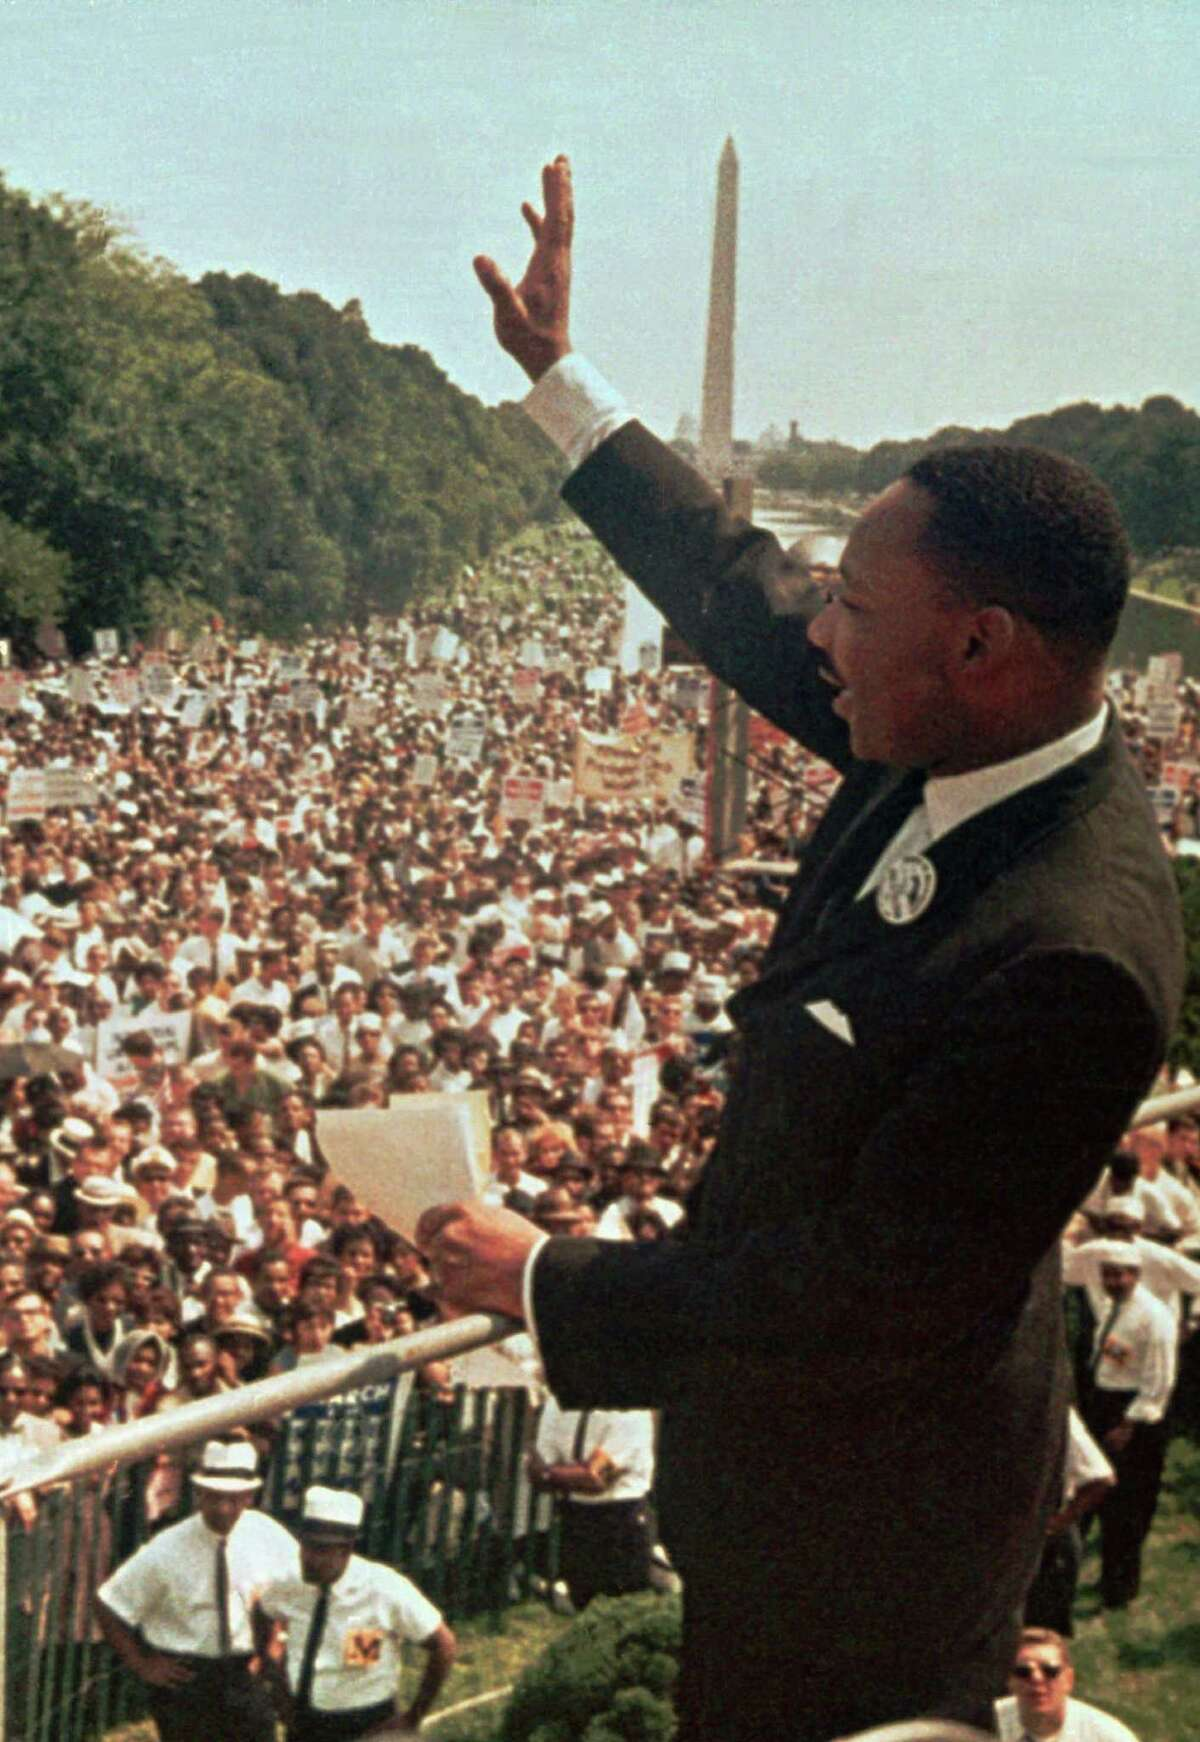 """Dr. Martin Luther King Jr. acknowledges the crowd at the Lincoln Memorial for his """"I Have a Dream"""" speech during the March on Washington, D.C. Aug. 28, 1963."""